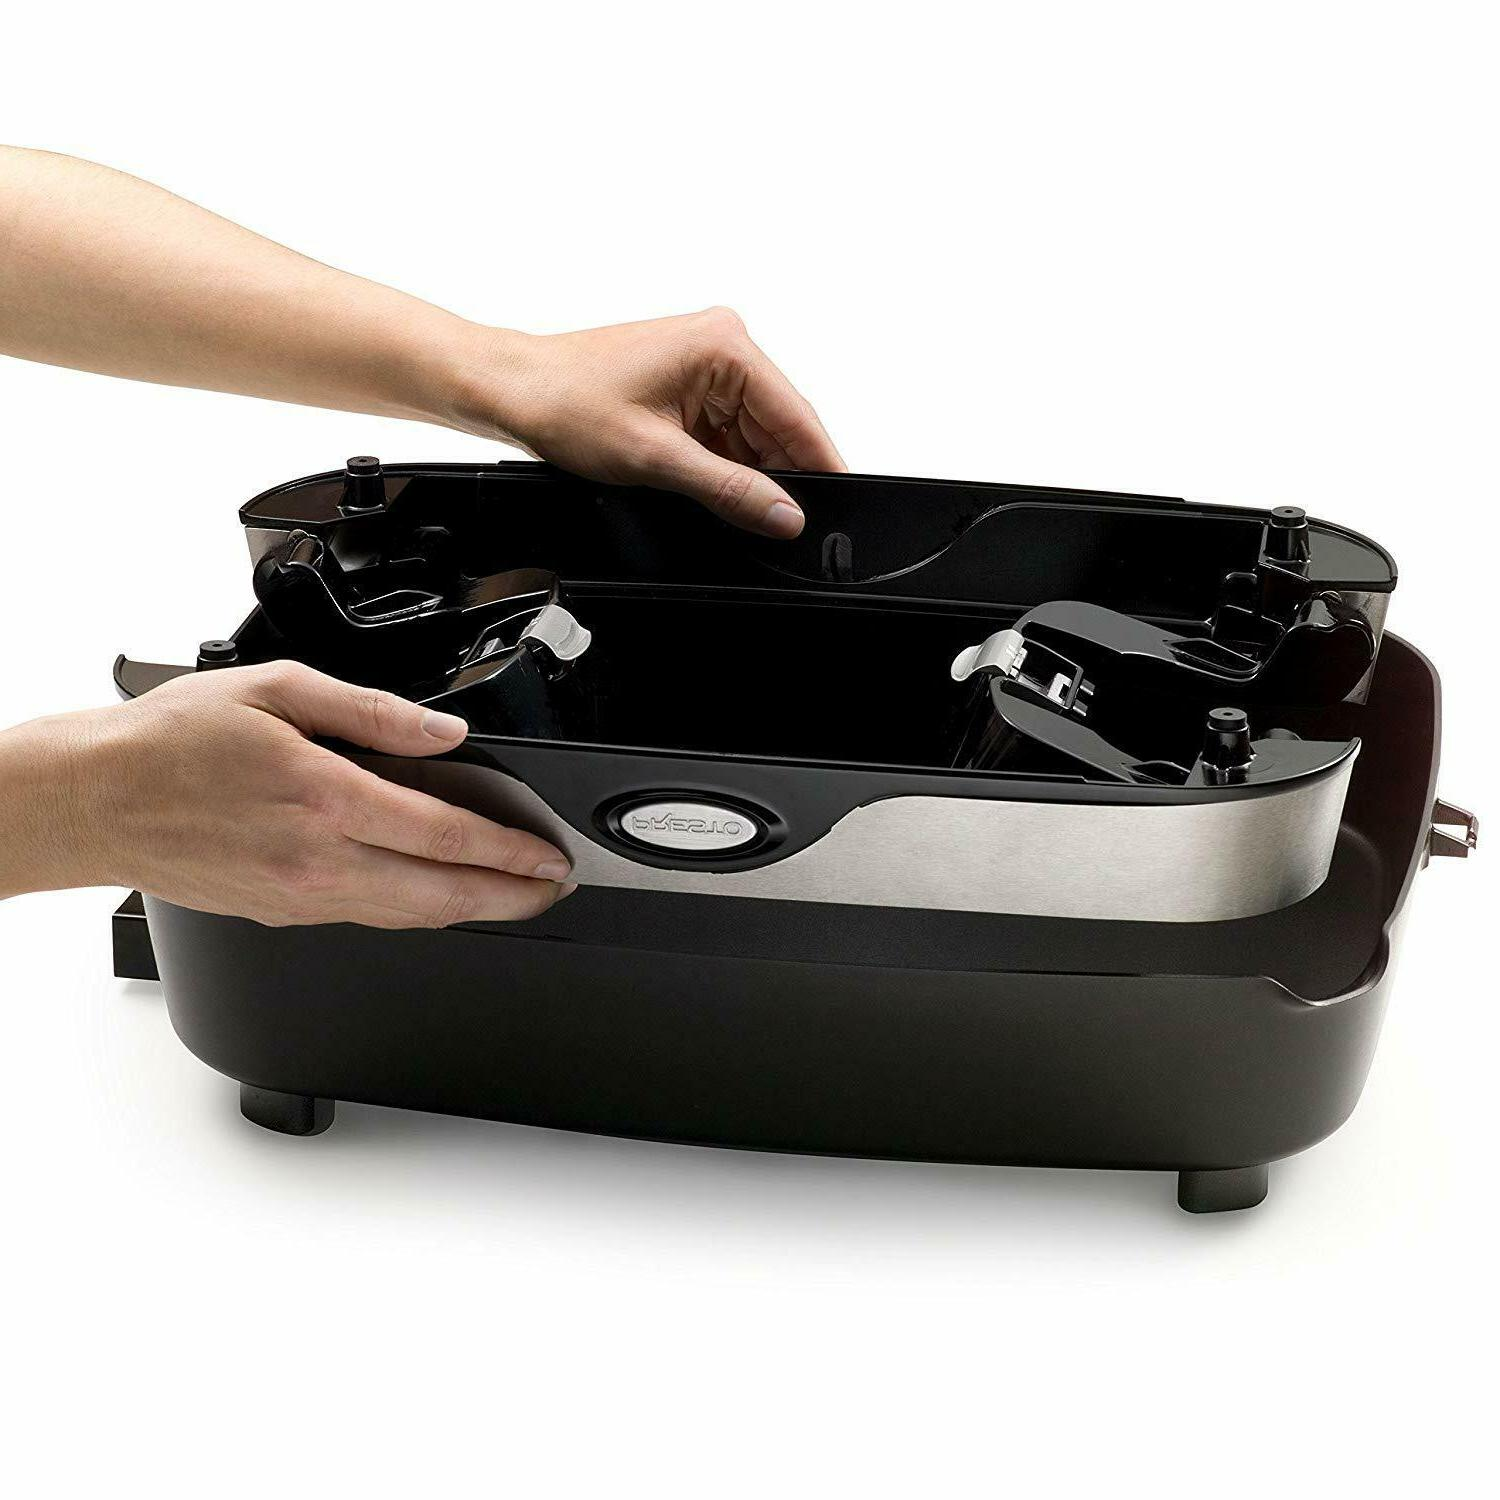 New Electric Skillet, - Shipping 2days